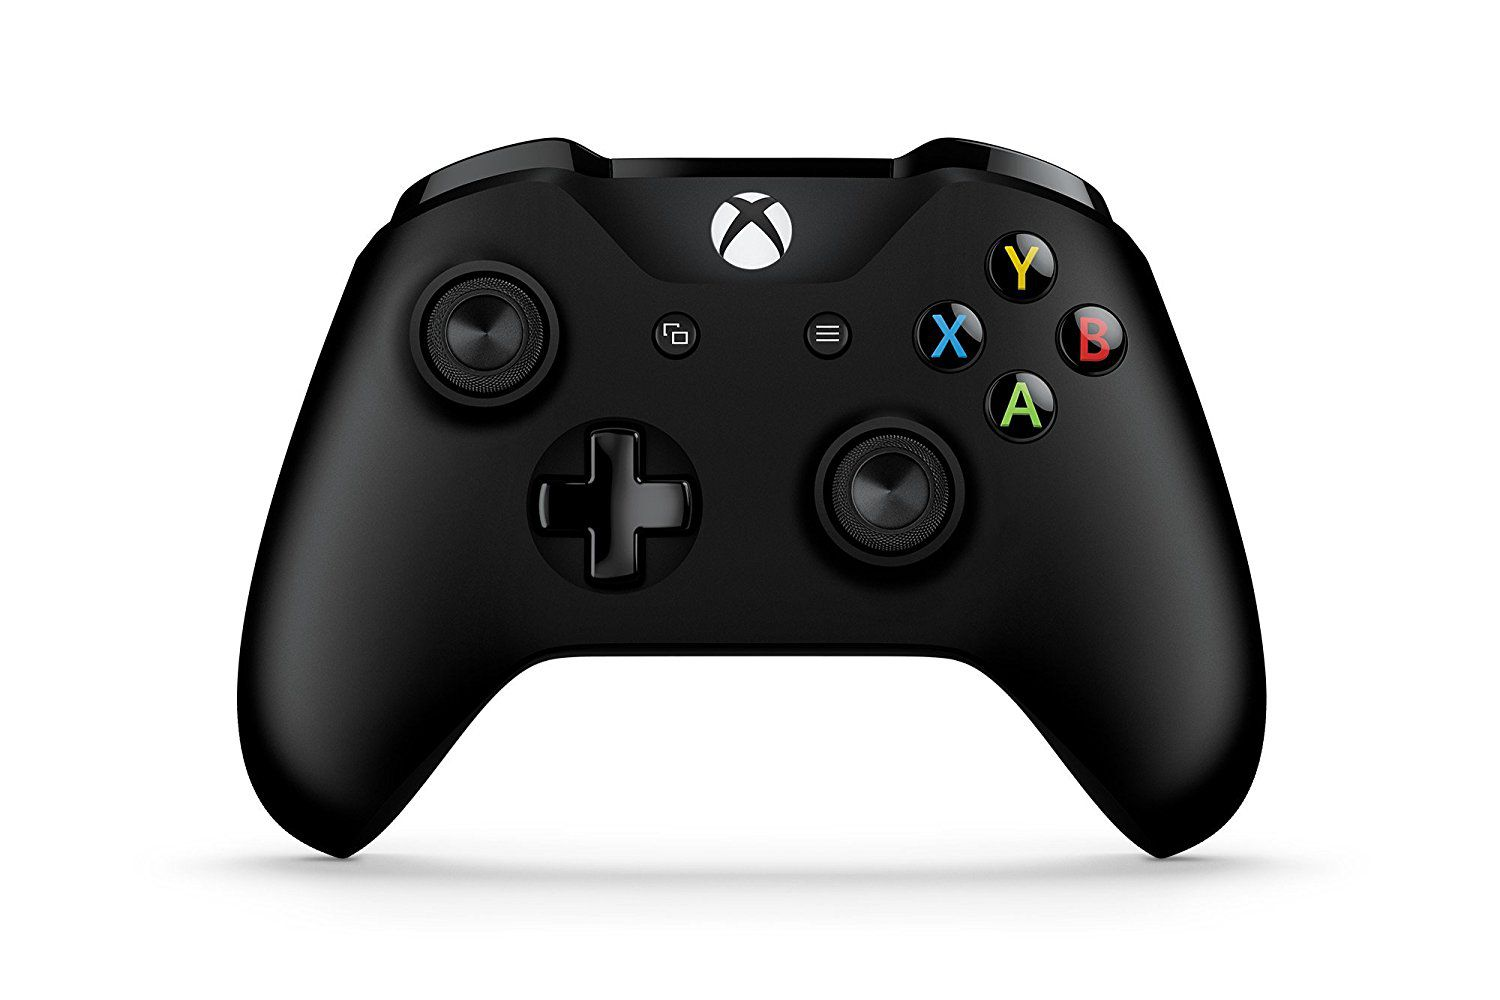 Ver Wireless Controller Nueva Edicion S Nottingham Xbox One